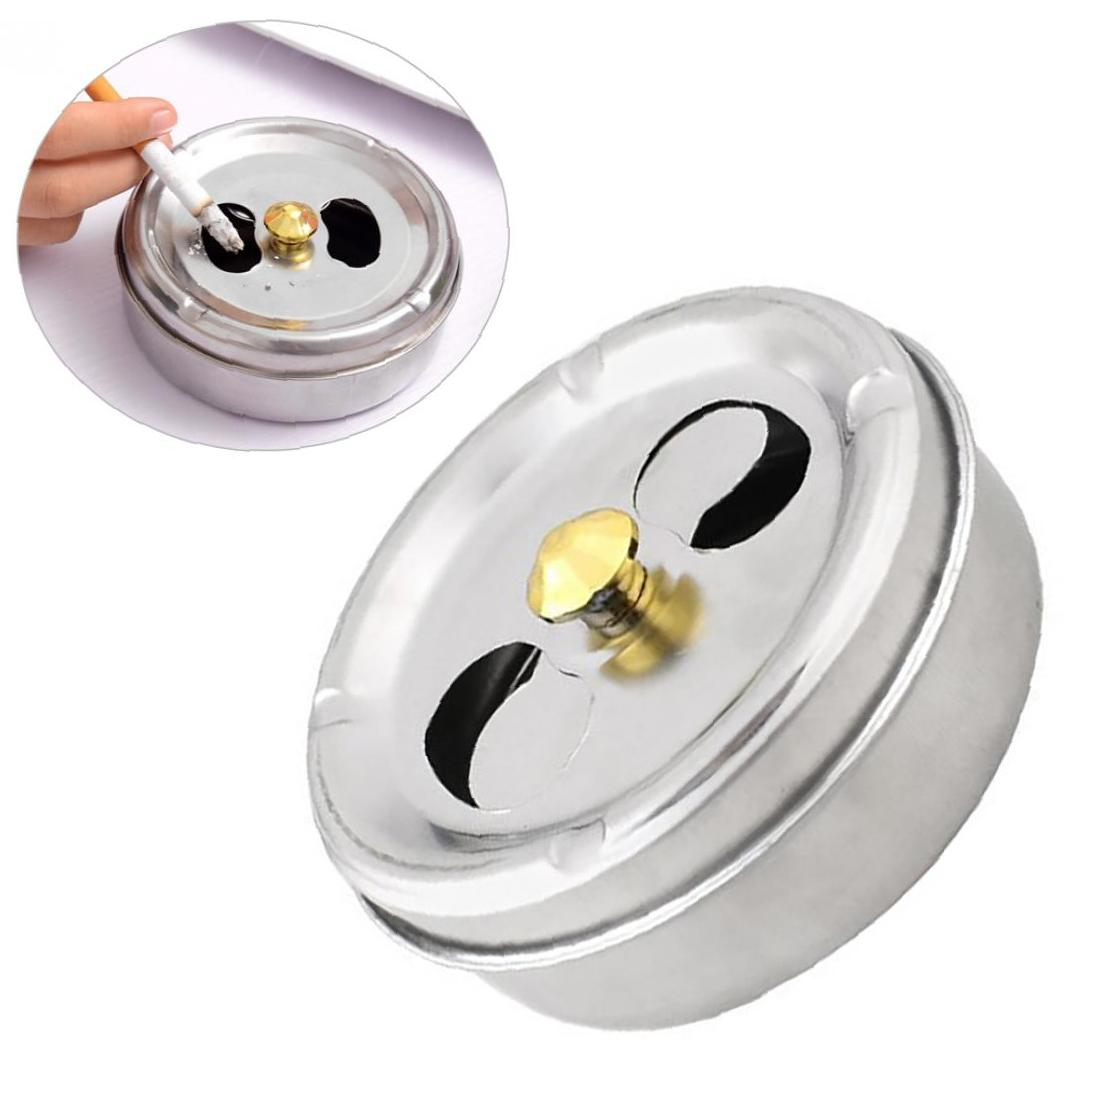 Round Spinning Ashtray Stainless Steel Ashtray With Lid Rotatable Ashtray Fully Enclosed Ashtray For Home Office Silver